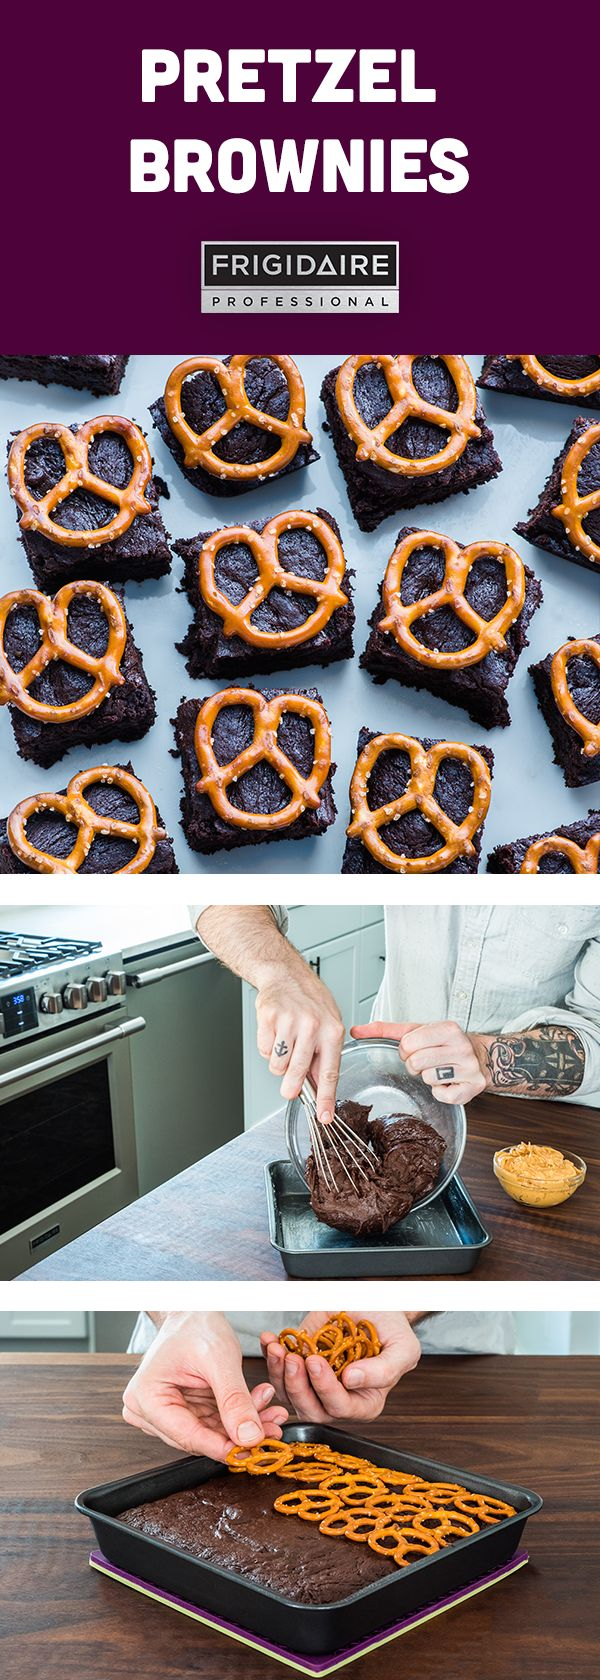 Here's a trick for a Halloween treat! Add crispy pretzels to chocolate peanut butter brownies for a sweet & salty snack. Click for full recipe from @dennisprescott.